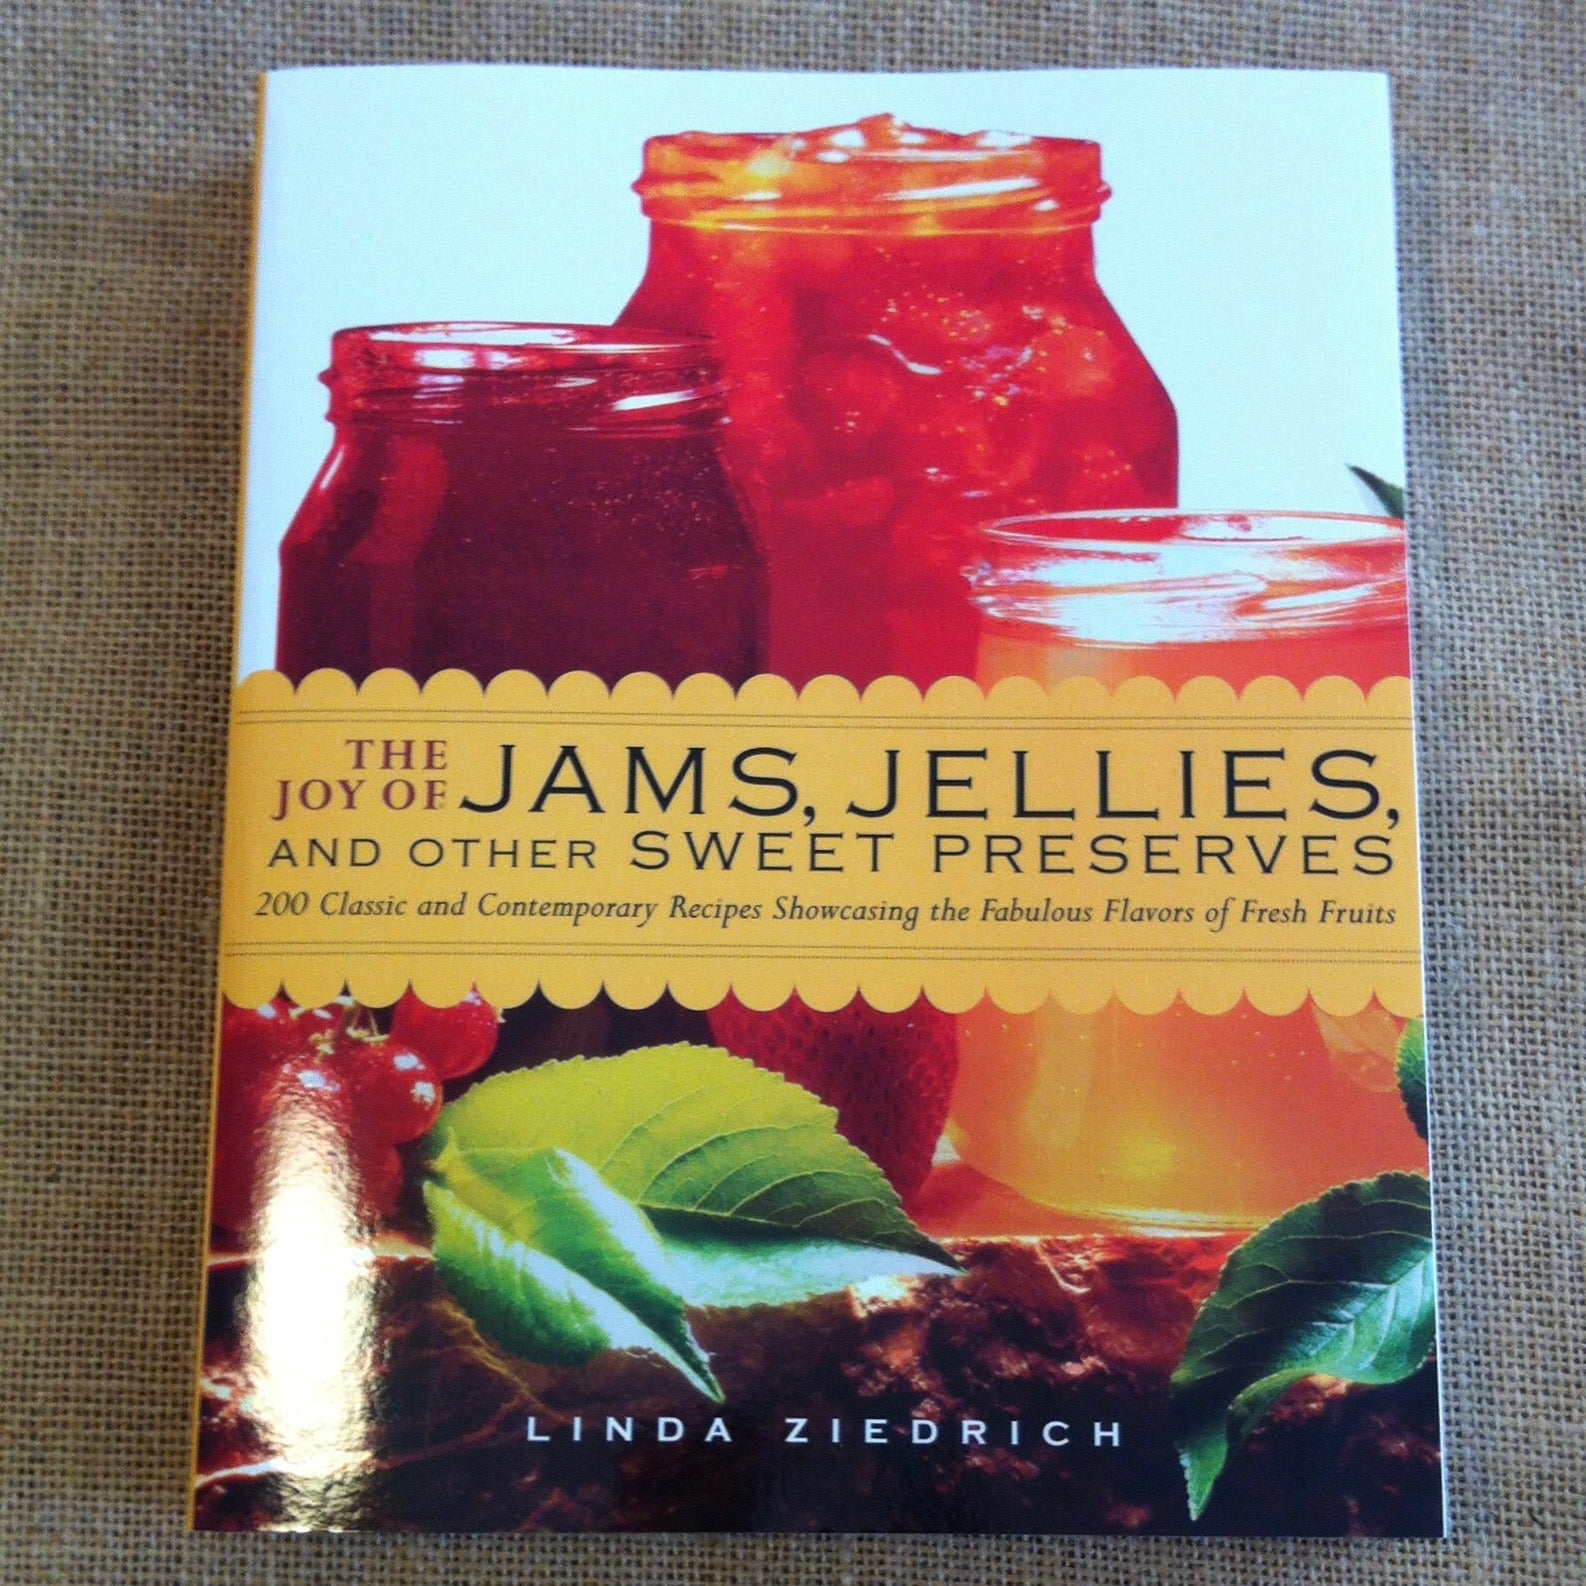 The Joy of Jams, Jellies, and Other Sweet Preserves